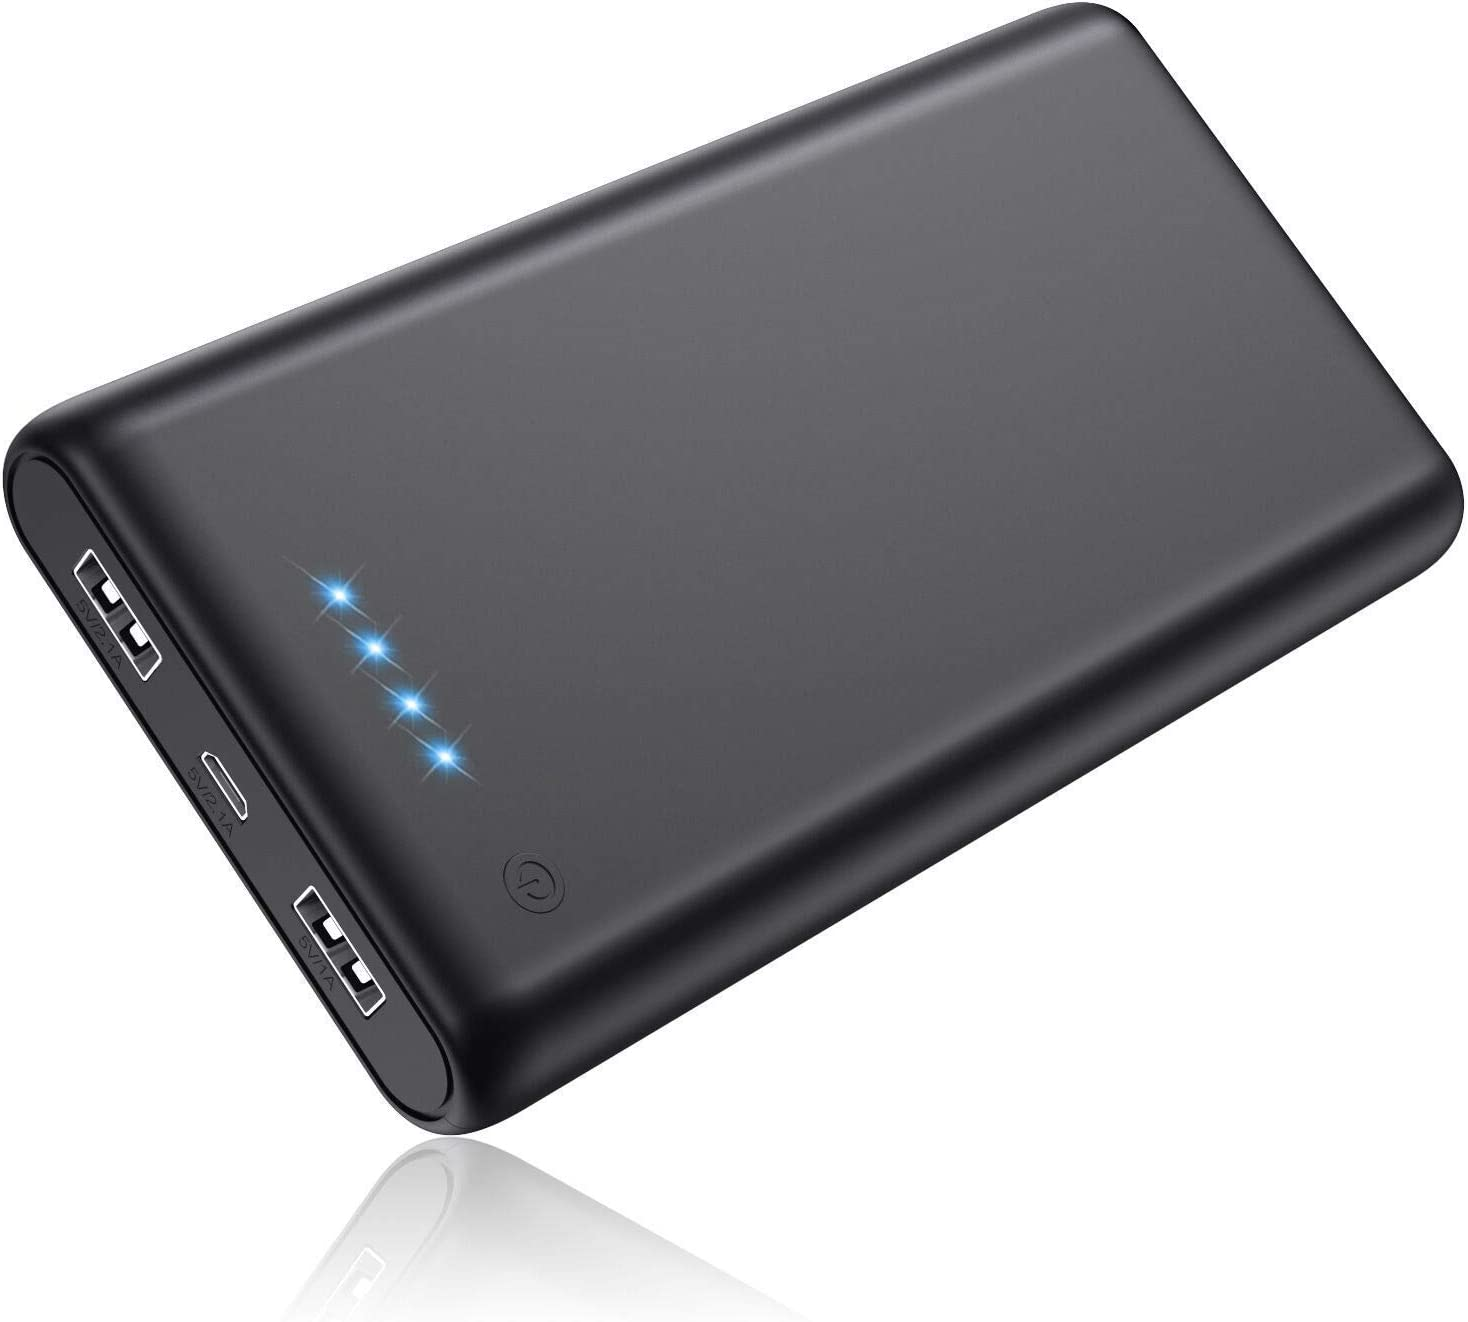 Portable Charger 25800mAh Power Bank Super High Capacity Lighter External Battery Pack Dual Output Ports Recharging Phone Charger for Android Phone, Smart Phone, Tablet etc